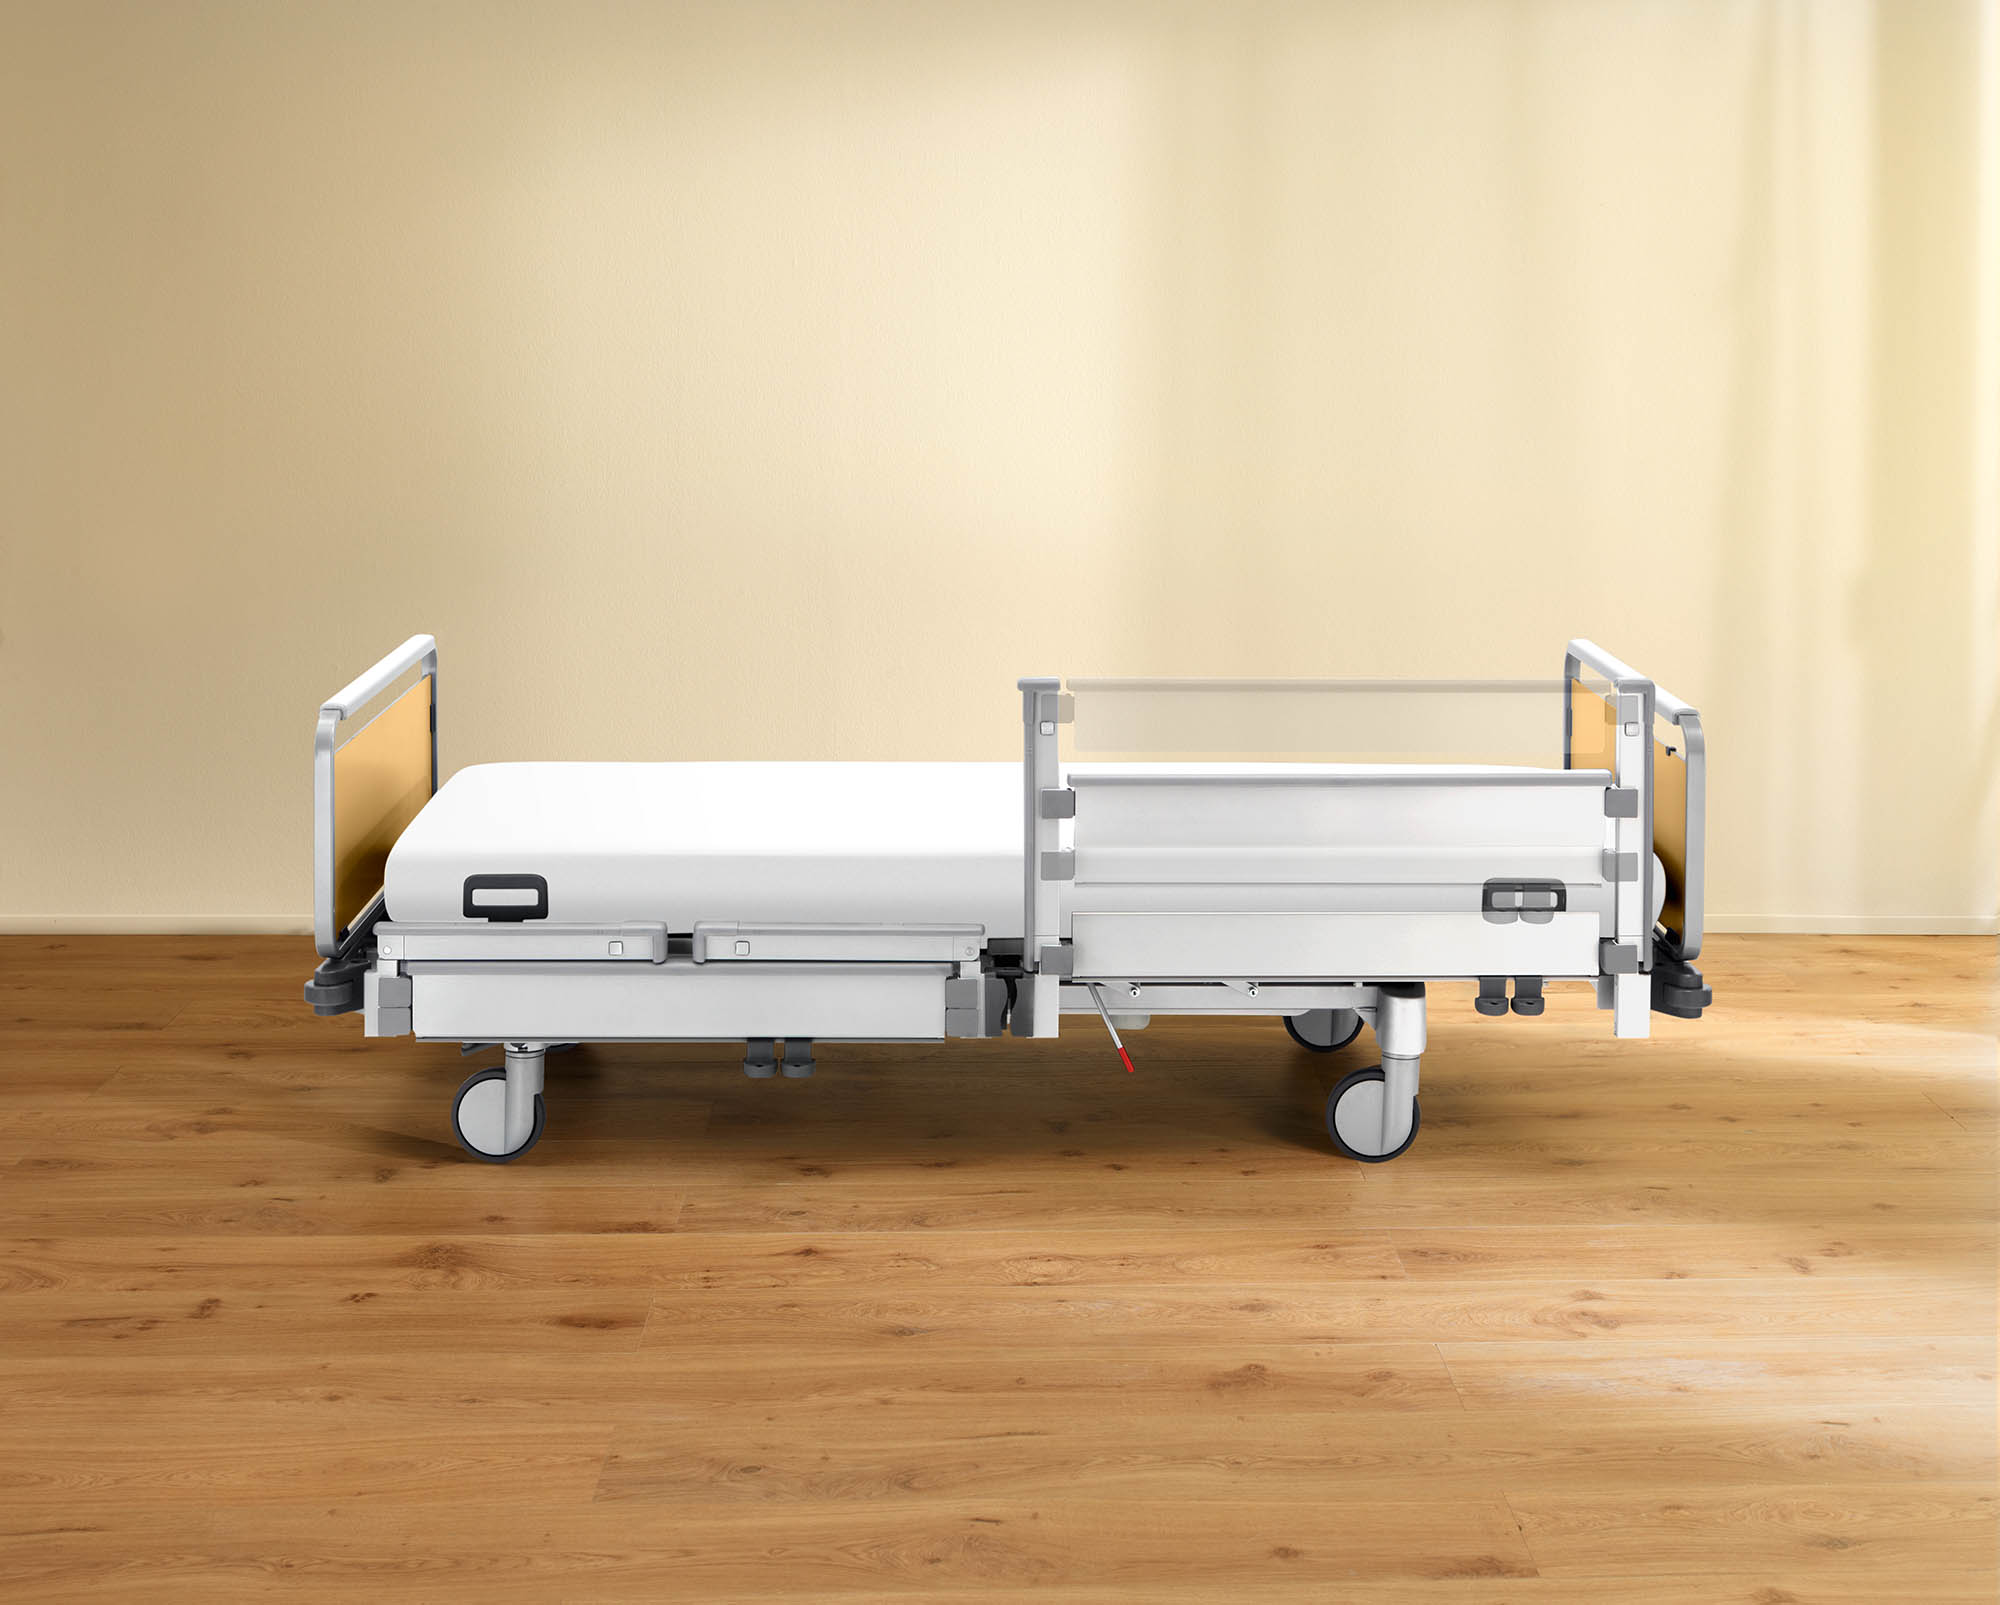 MultiFlex safety side raised at the head end on the Vida hospital bed